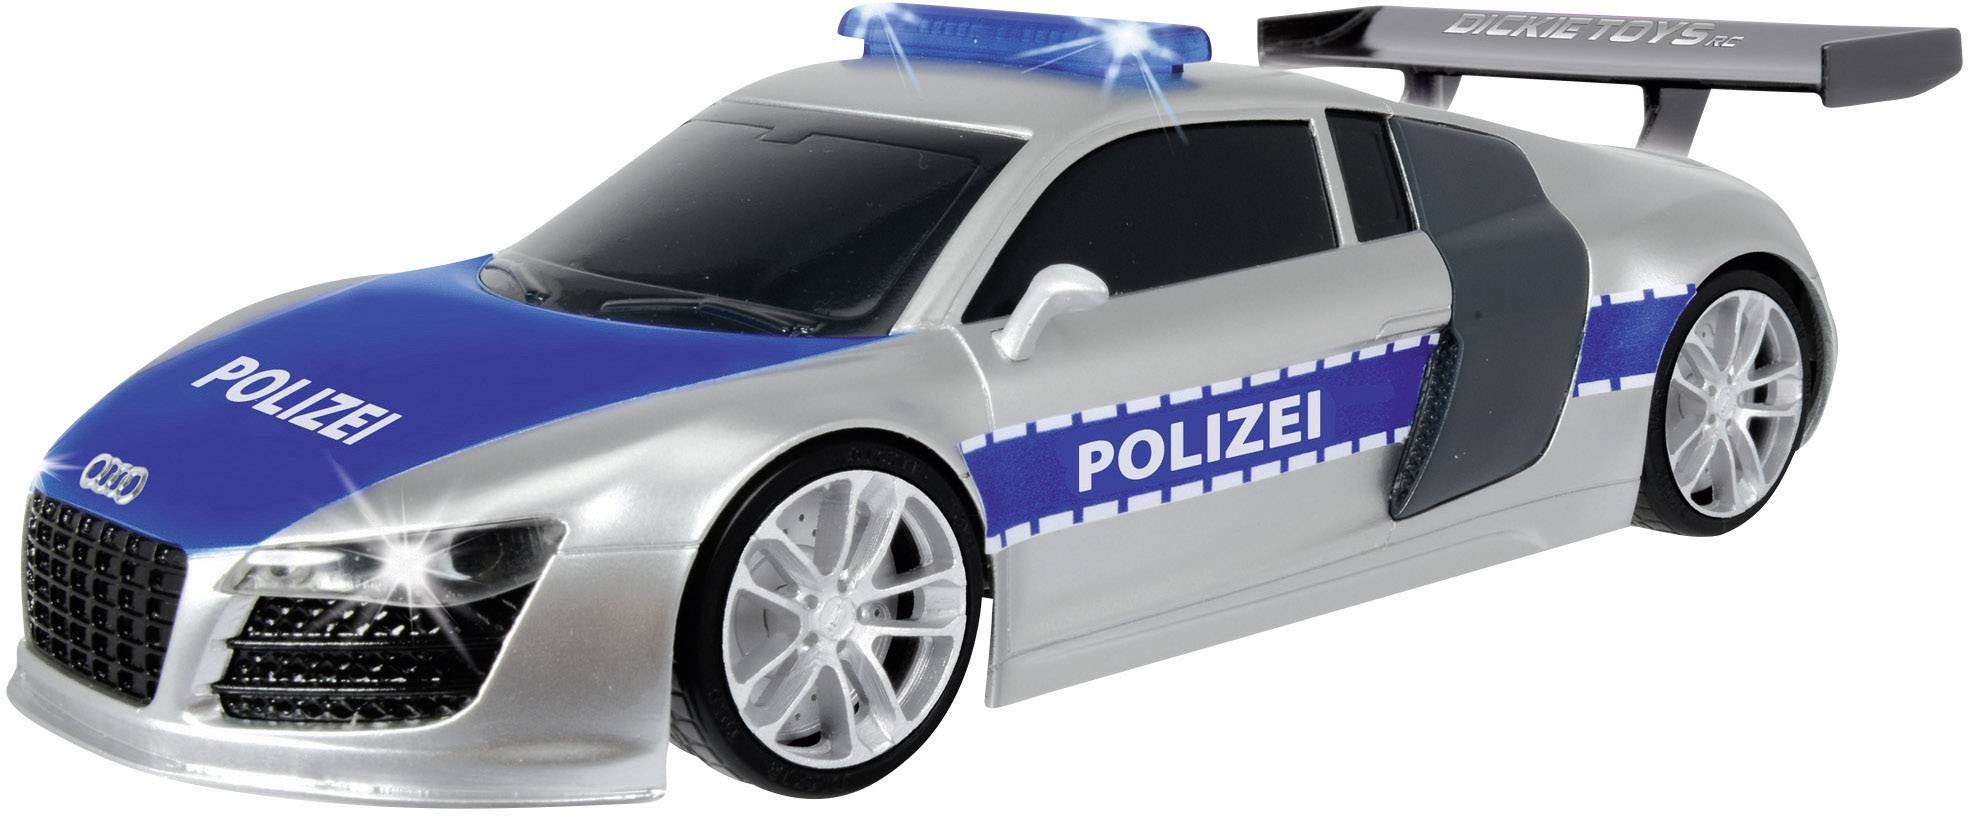 RC model auta Dickie Toys Highway Patrol 201119059, 1:16